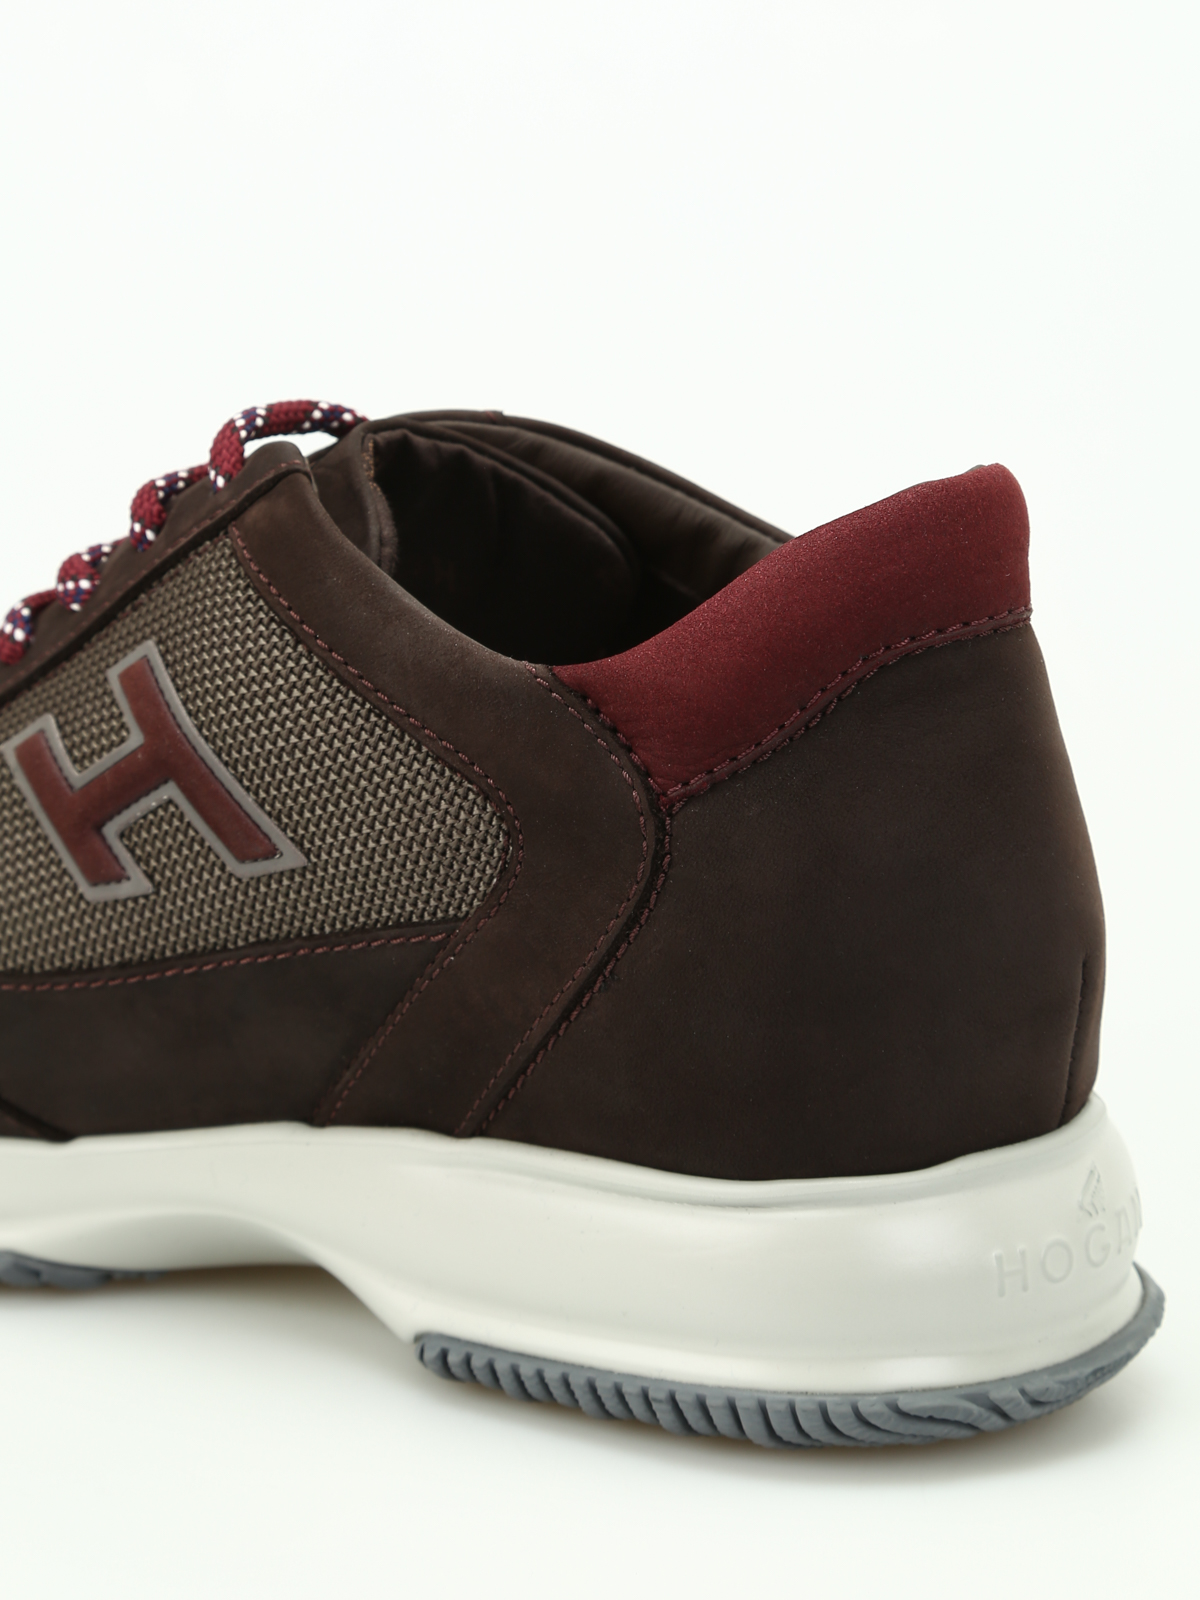 Hogan Shop Online Hogan Scarpe New Interactive In Suede Sneakers